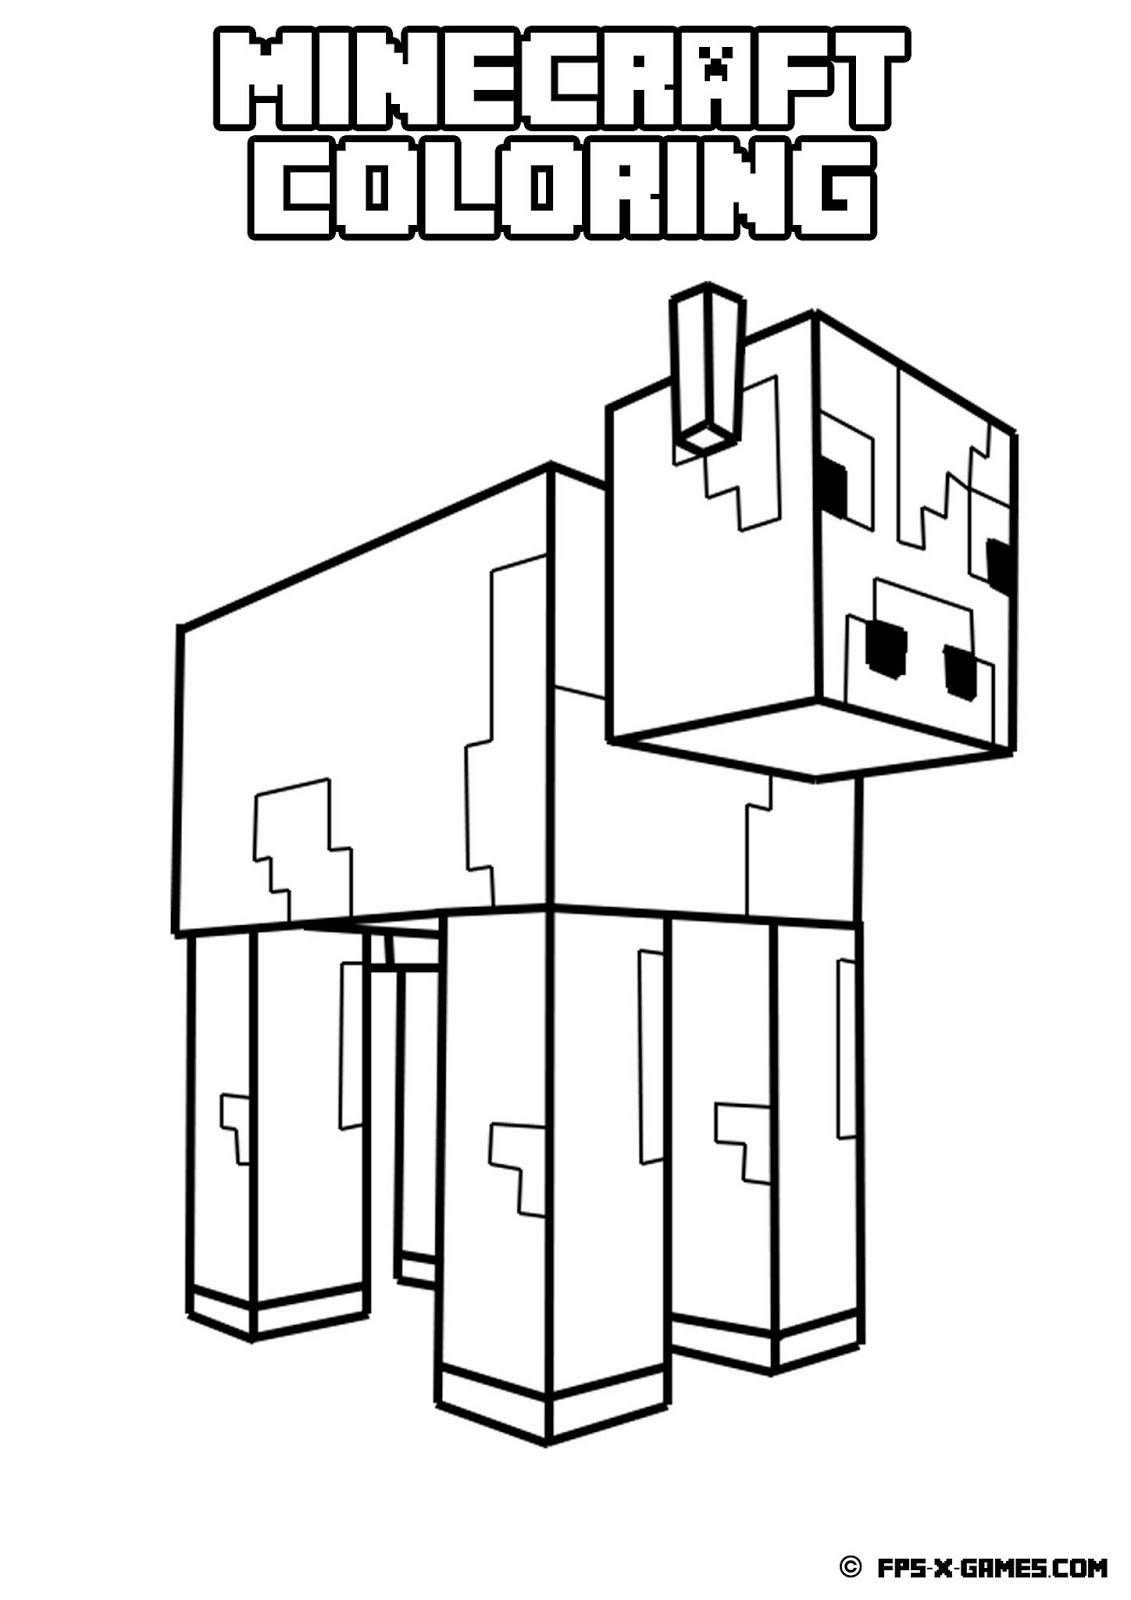 Printable Minecraft Coloring Page  Minecraft coloring pages, Cow